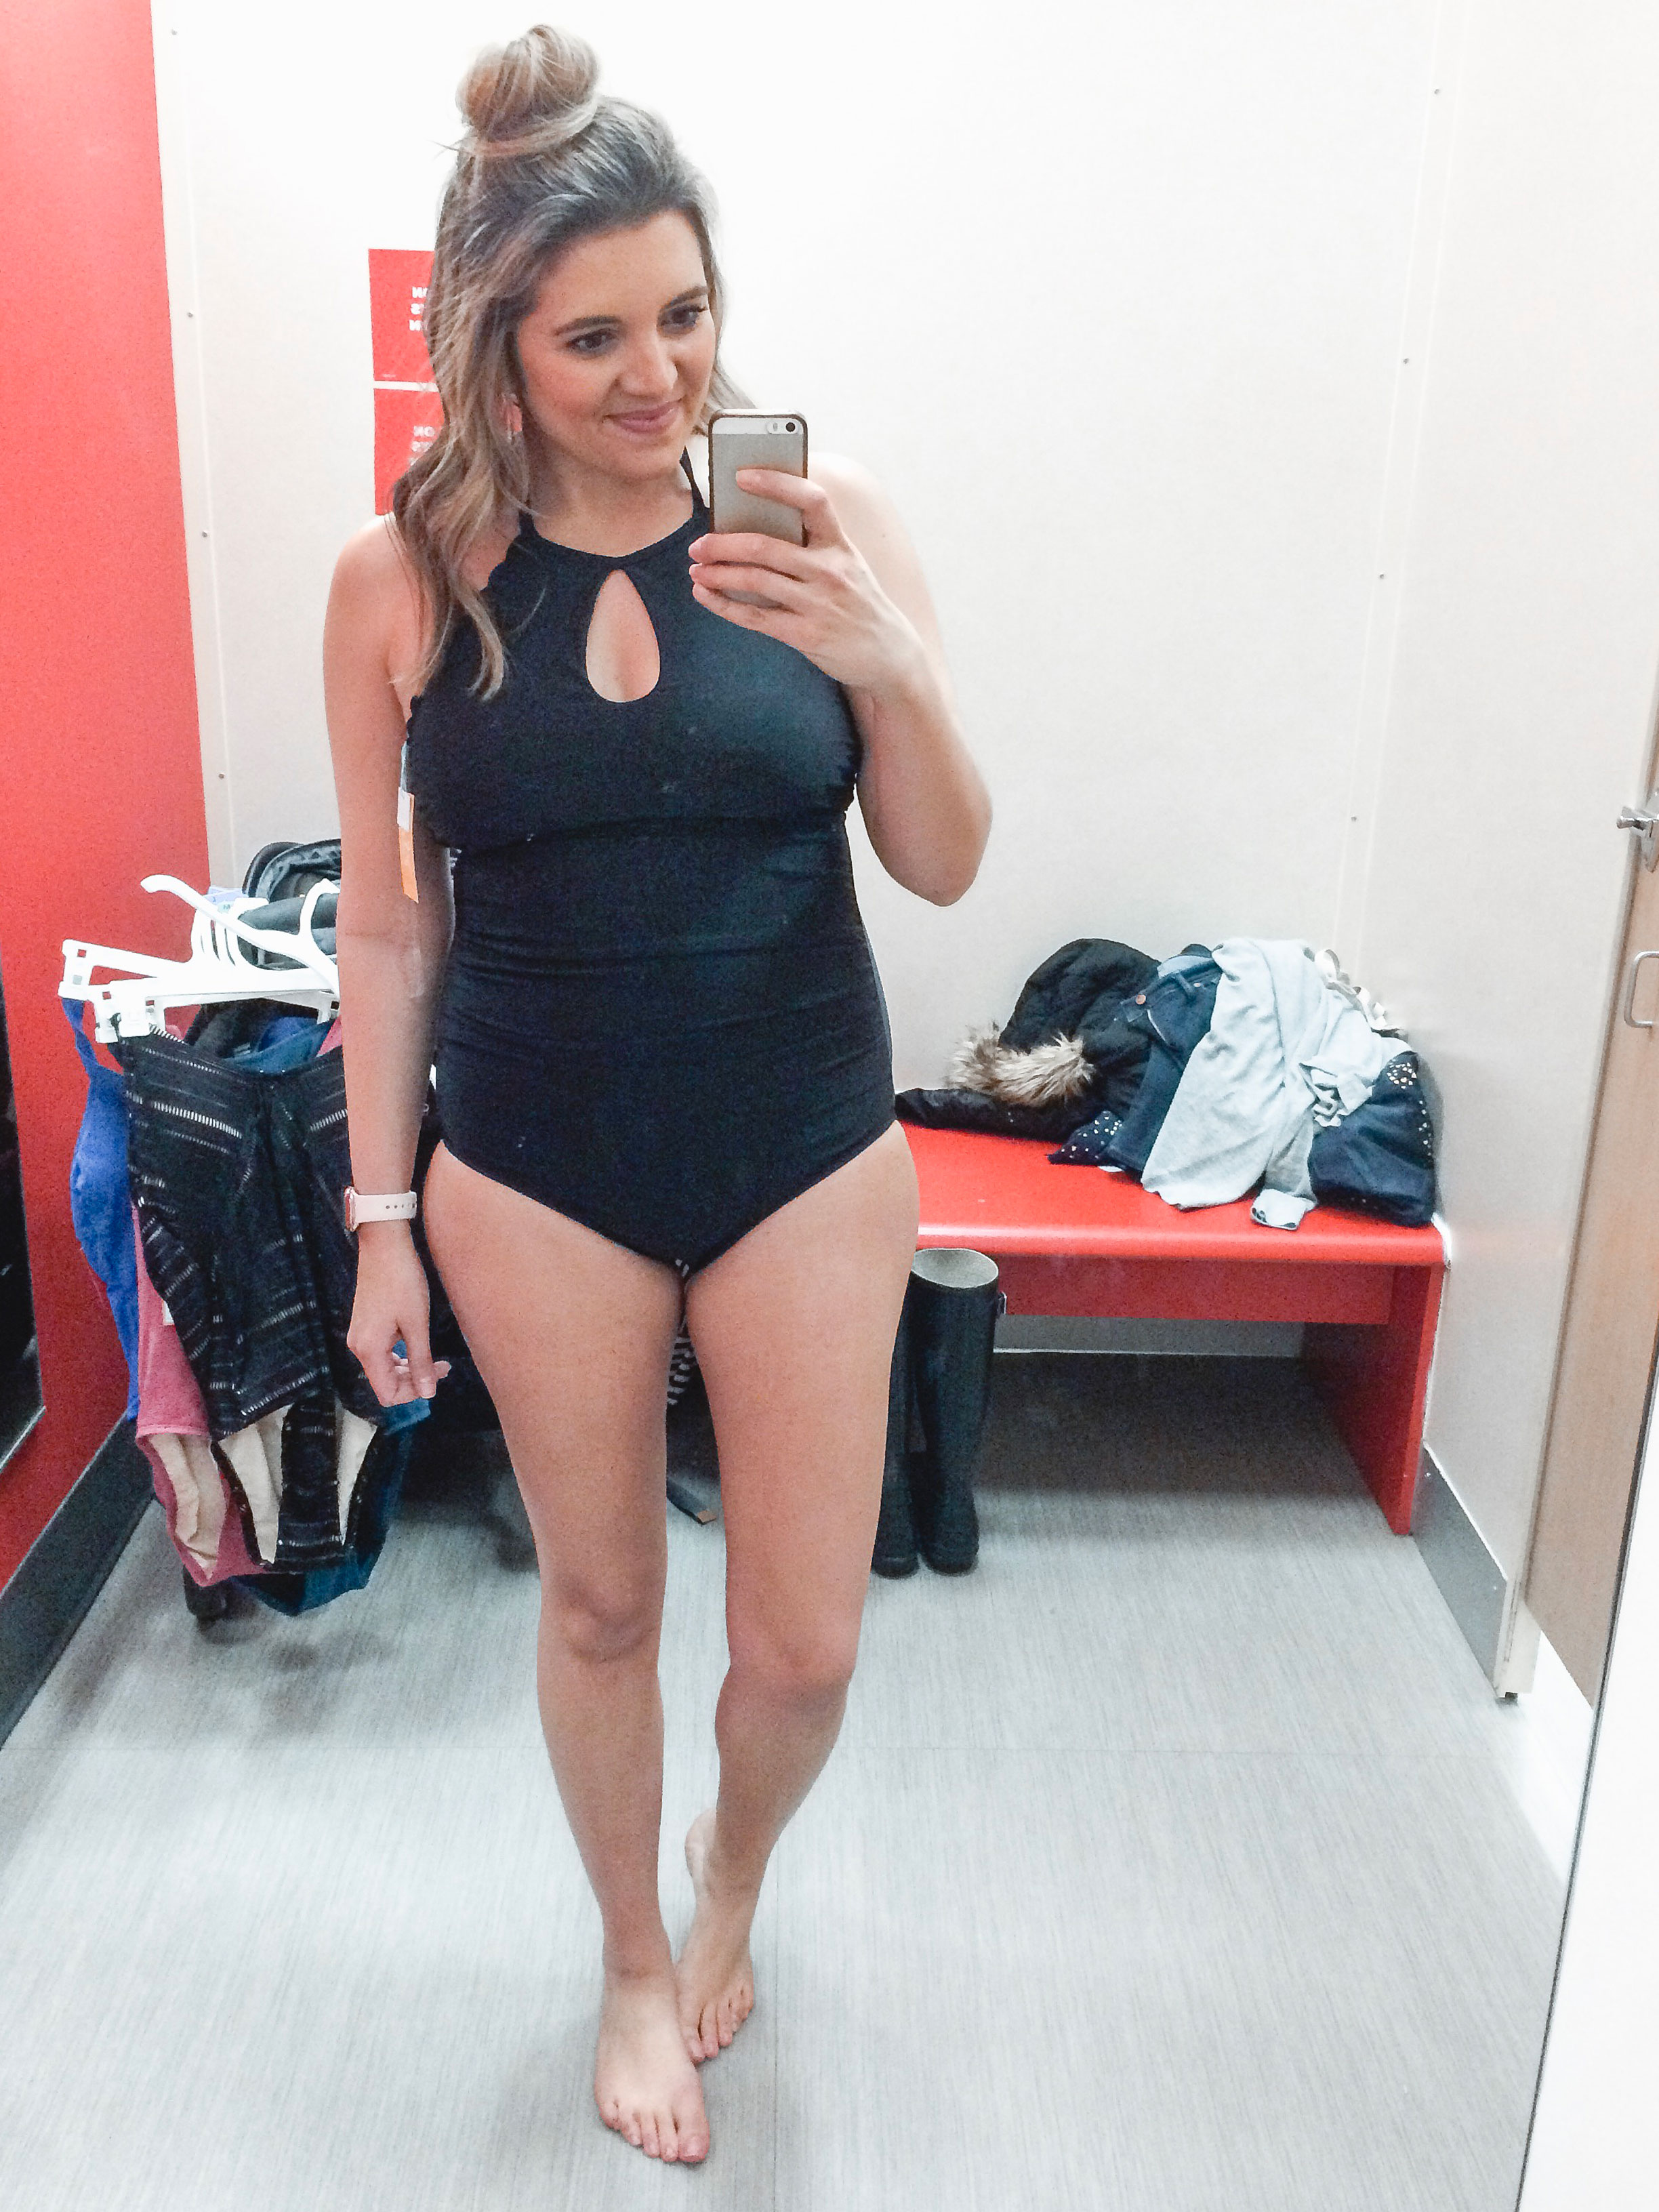 Affordable style blogger Lauren Dix shares over 25 of the best affordable one piece swimsuits!